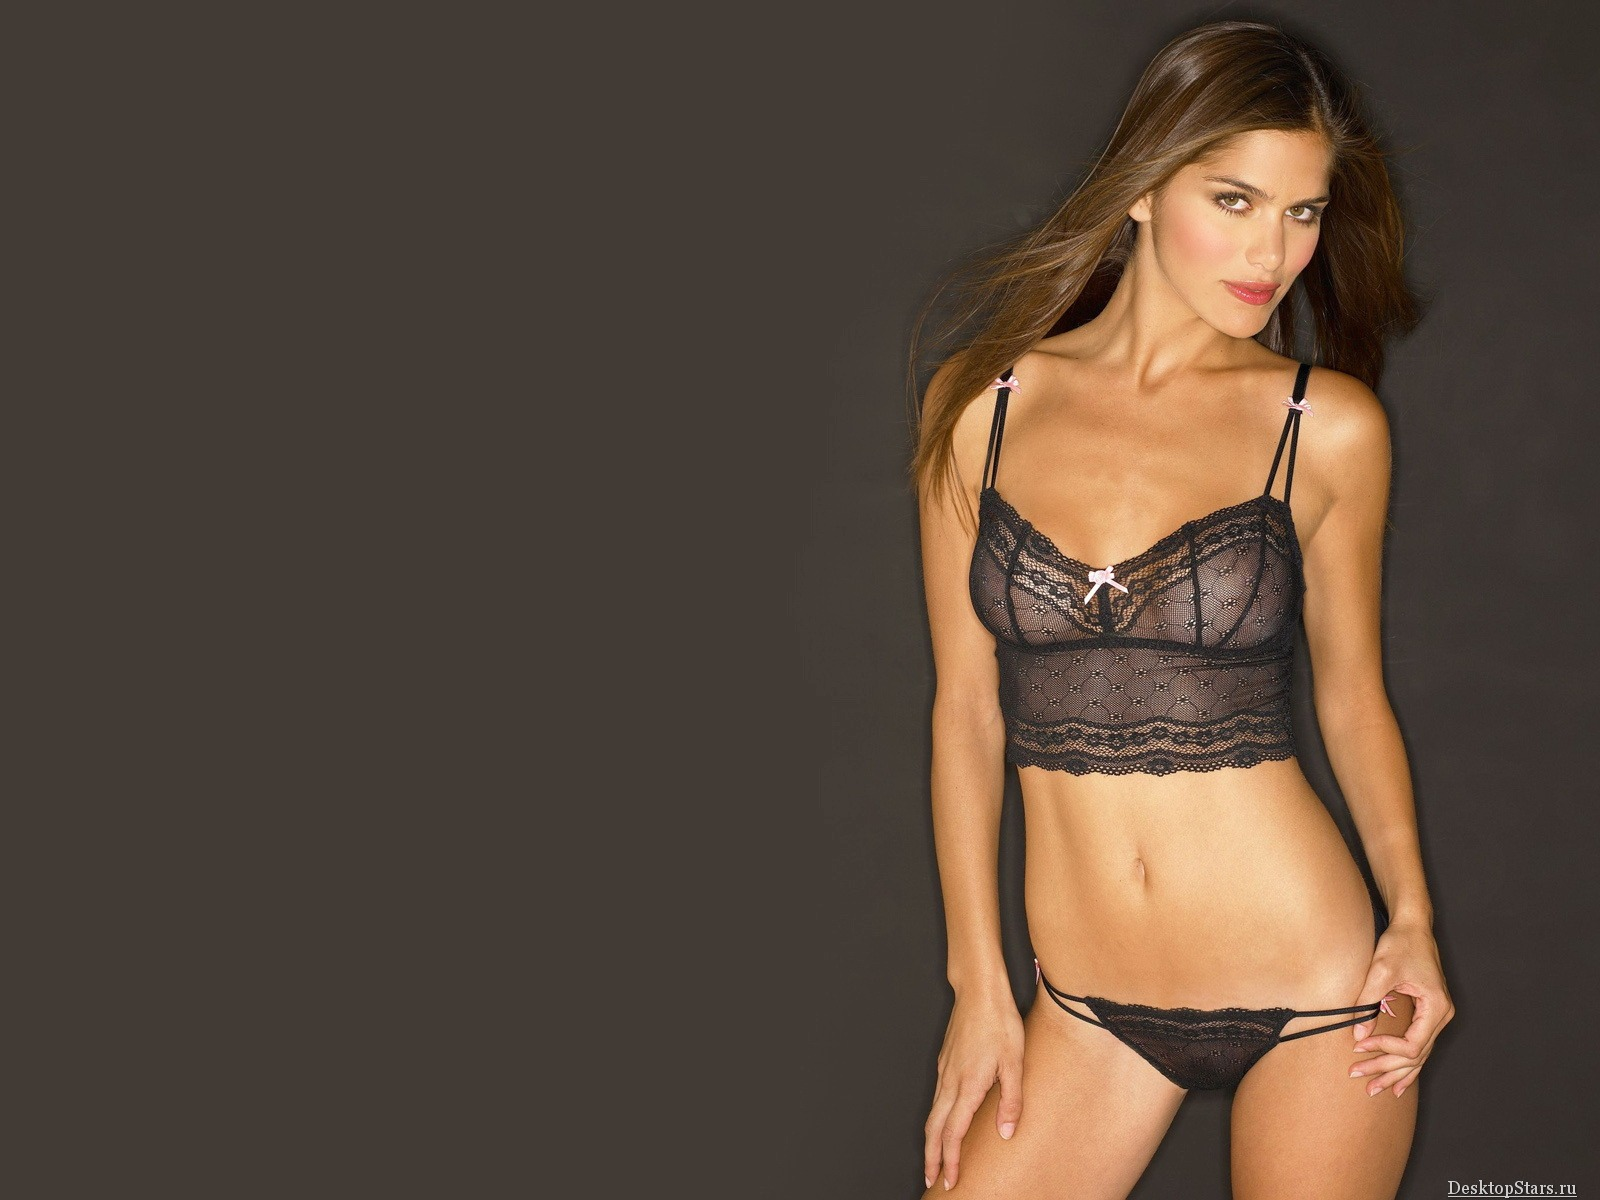 Anahi Gonzales #039 - 1600x1200 Wallpapers Pictures Photos Images